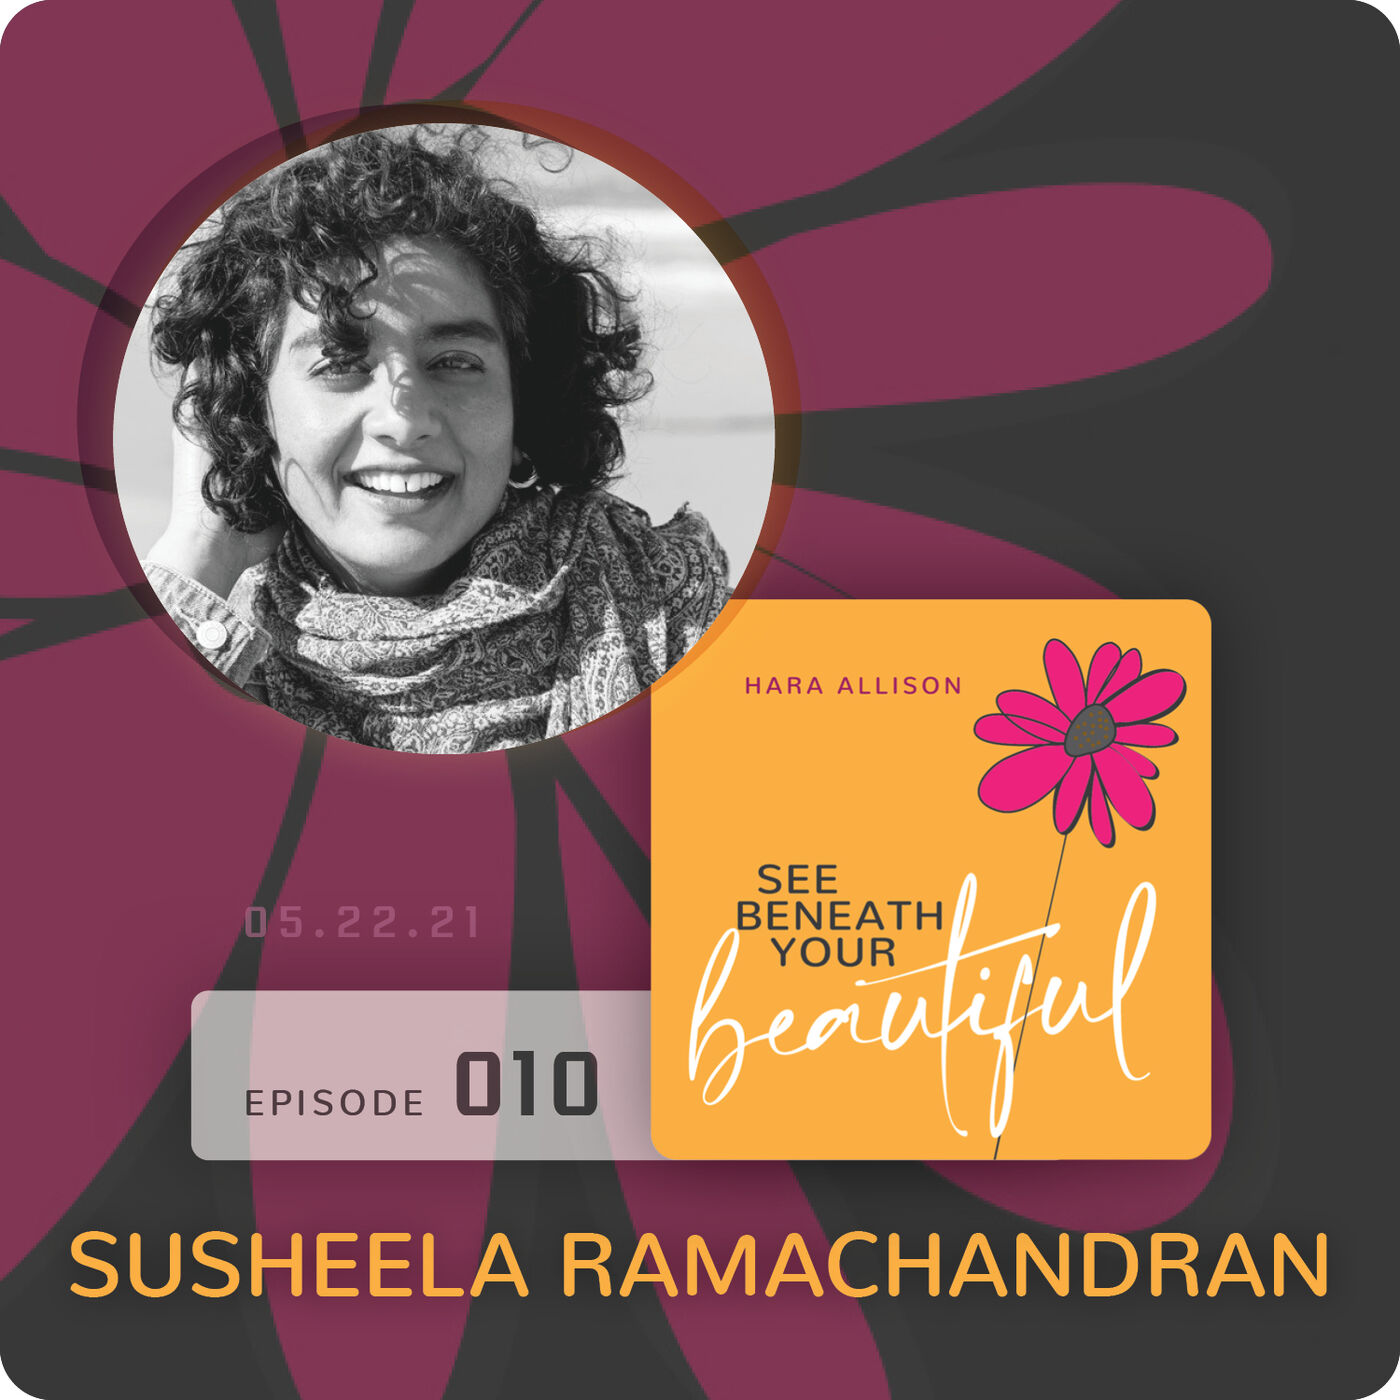 010. Susheela Ramachandran discusses being a sound healer, creative play facilitator, intuitive coach, motherless daughter and finding unconditional love for herself in her mother's stead